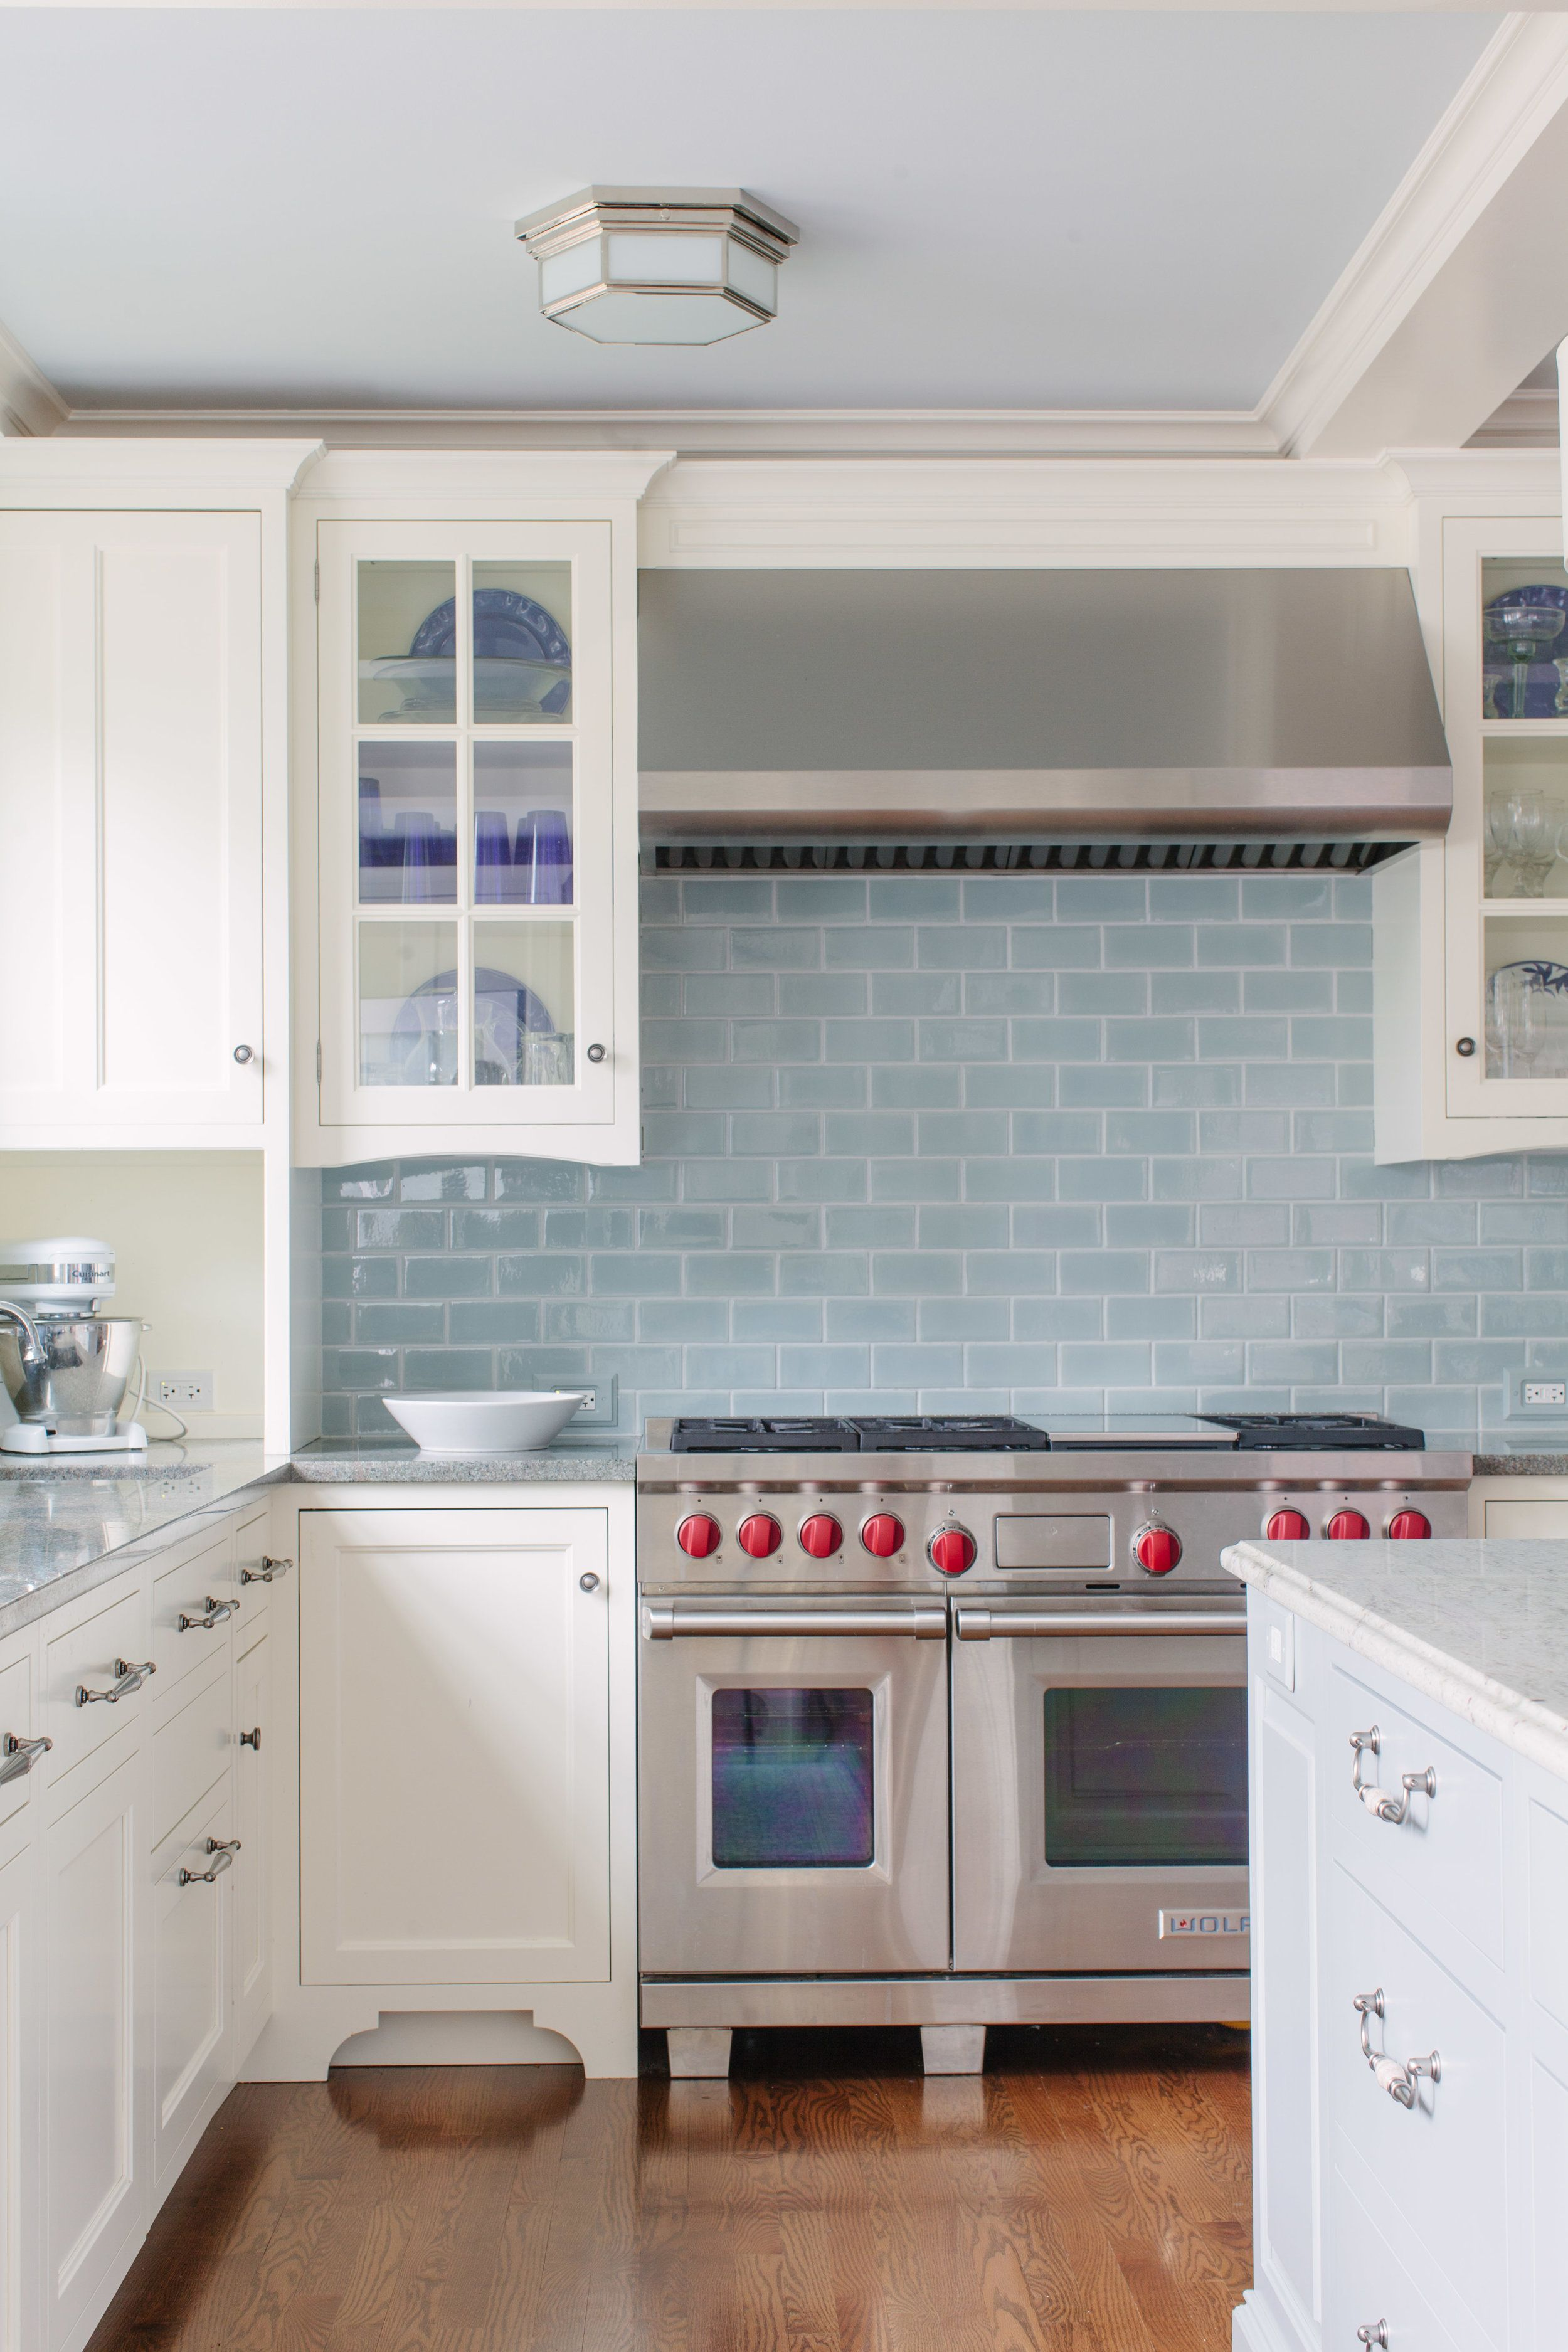 White Kitchen Design With Stainless Steel Design And Light Blue